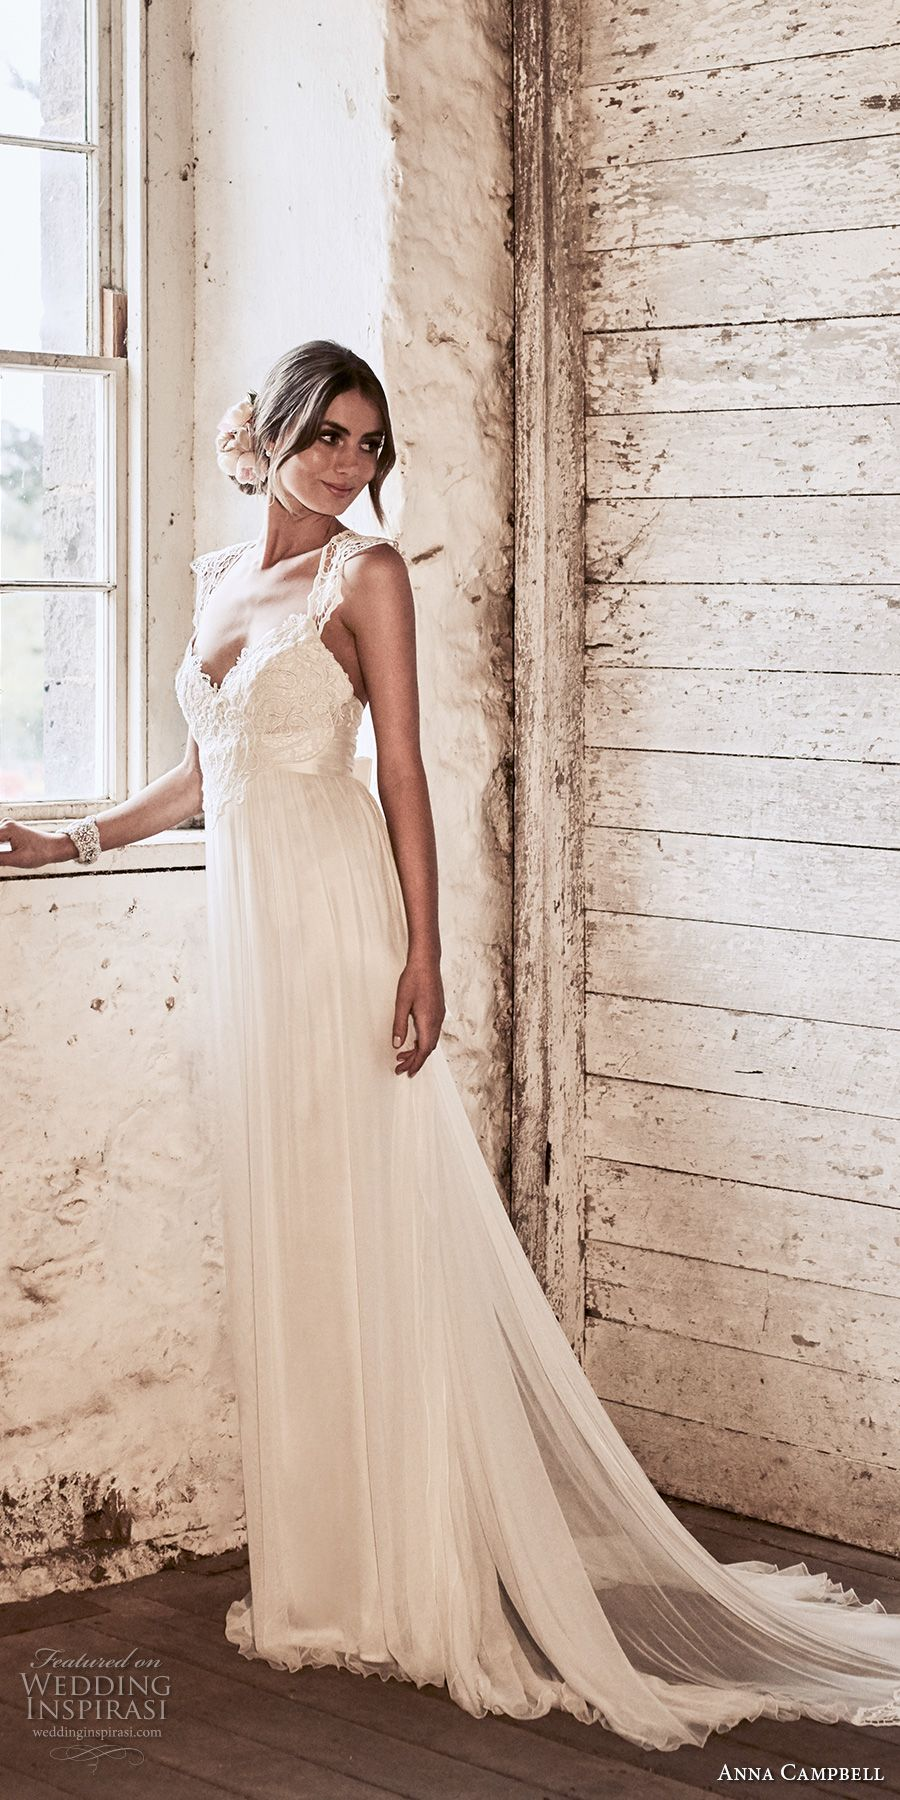 anna campbell 2018 bridal cap sleeves sweetheart neckline heavily embellished bodice tulle skirt soft a line wedding dress lace rasor back sweep train (12) mv -- Anna Campbell 2018 Wedding Dresses